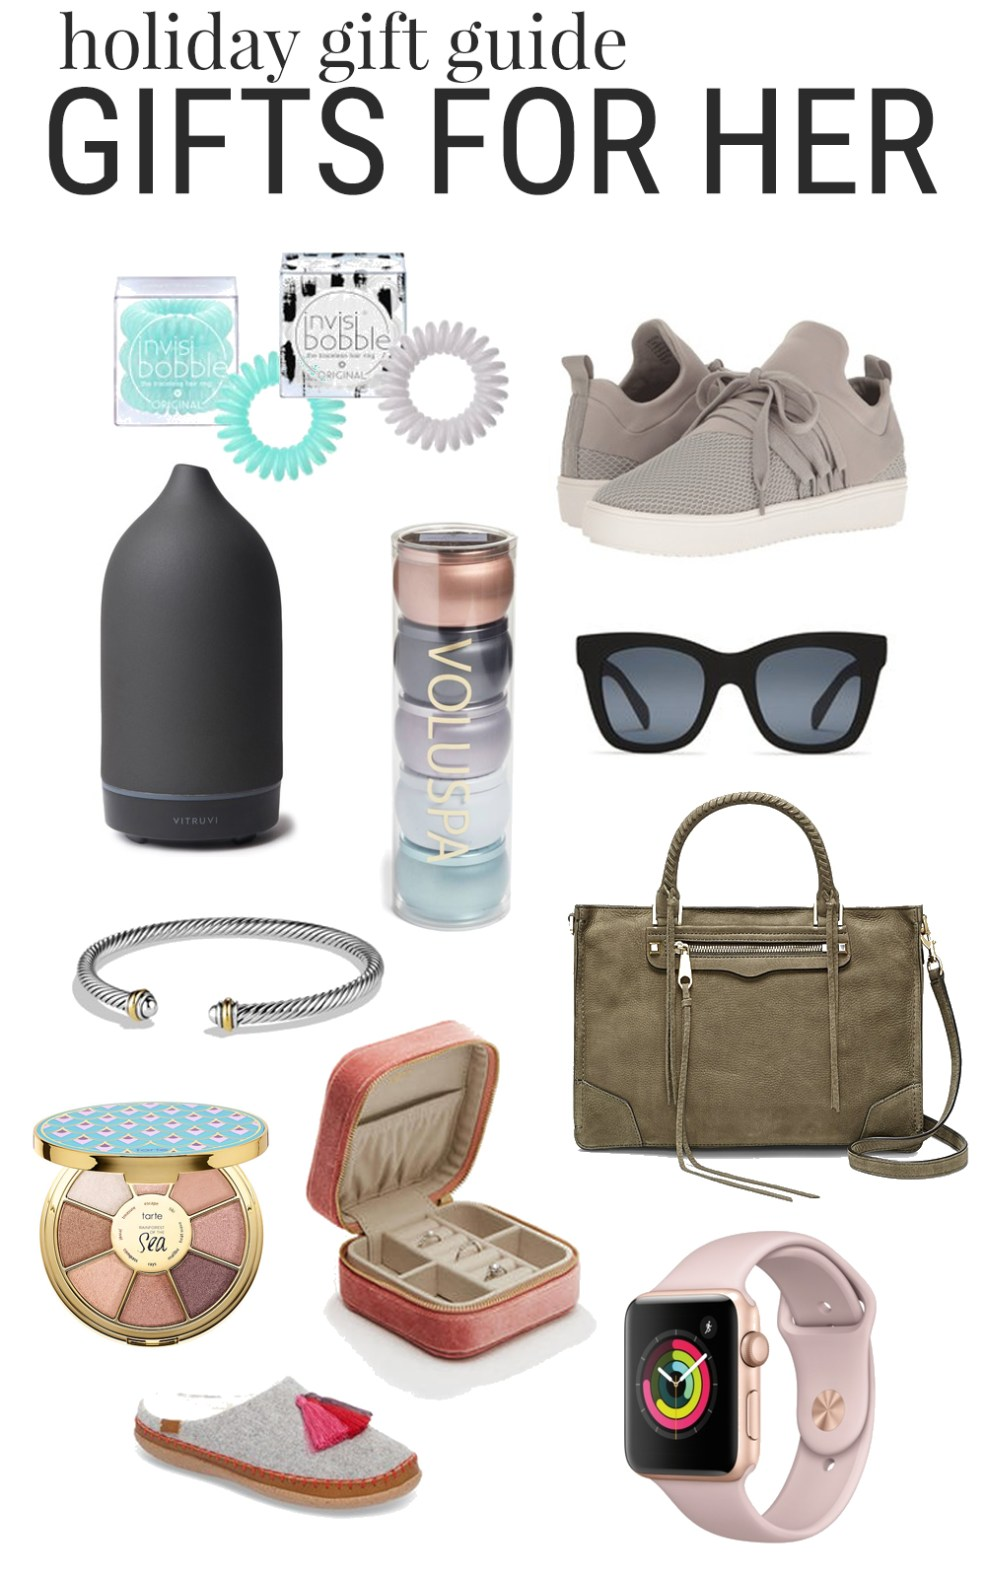 Holiday Gift Guide for Her | Christmas Gift Ideas for Women